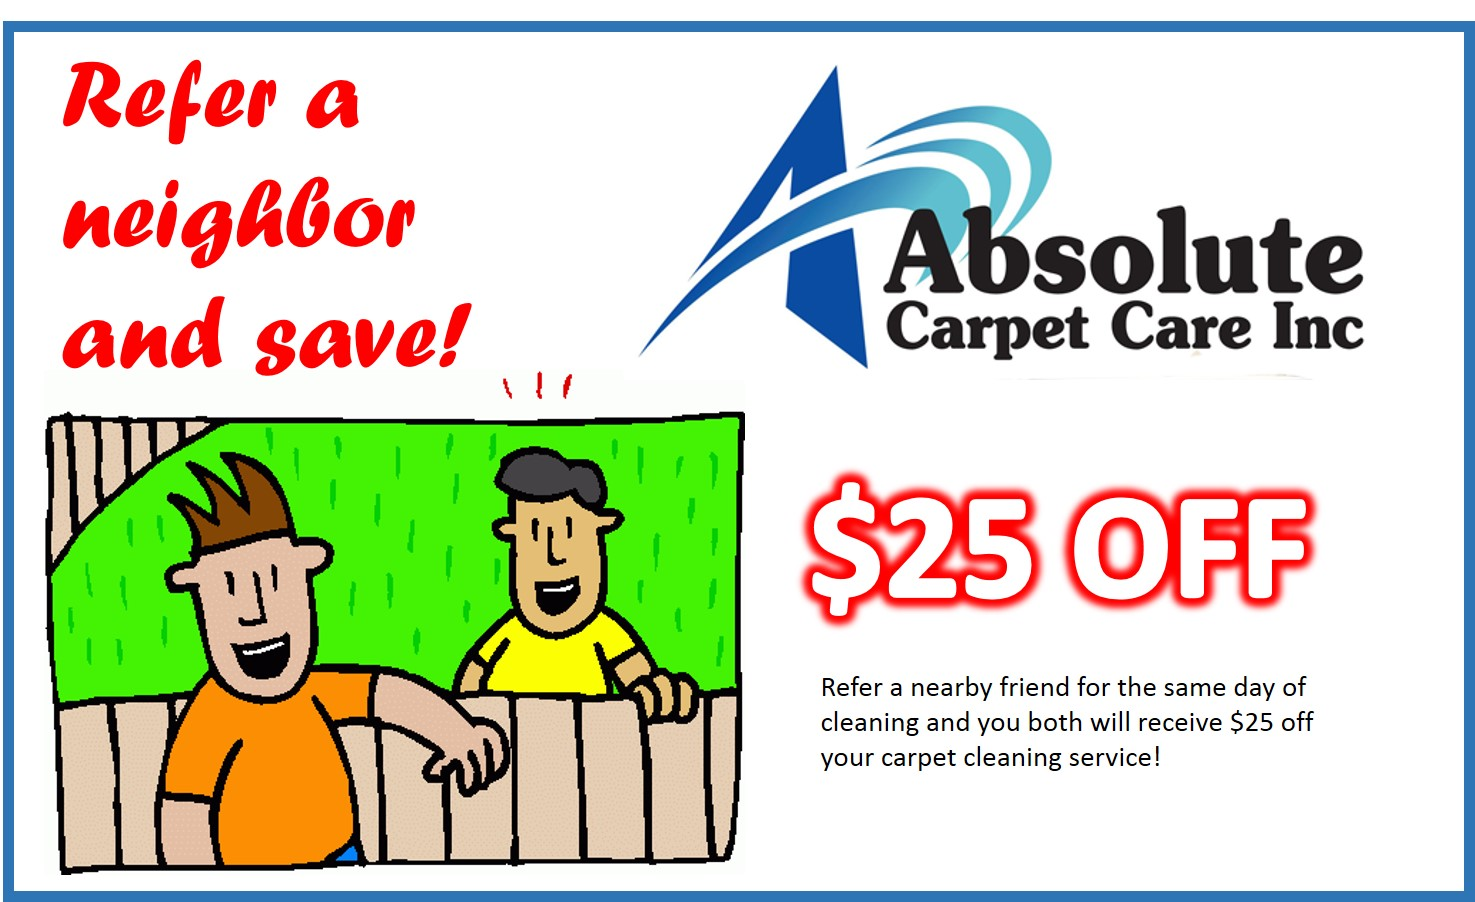 Absolute Carpet Care Carpet Cleaning In Fairfax